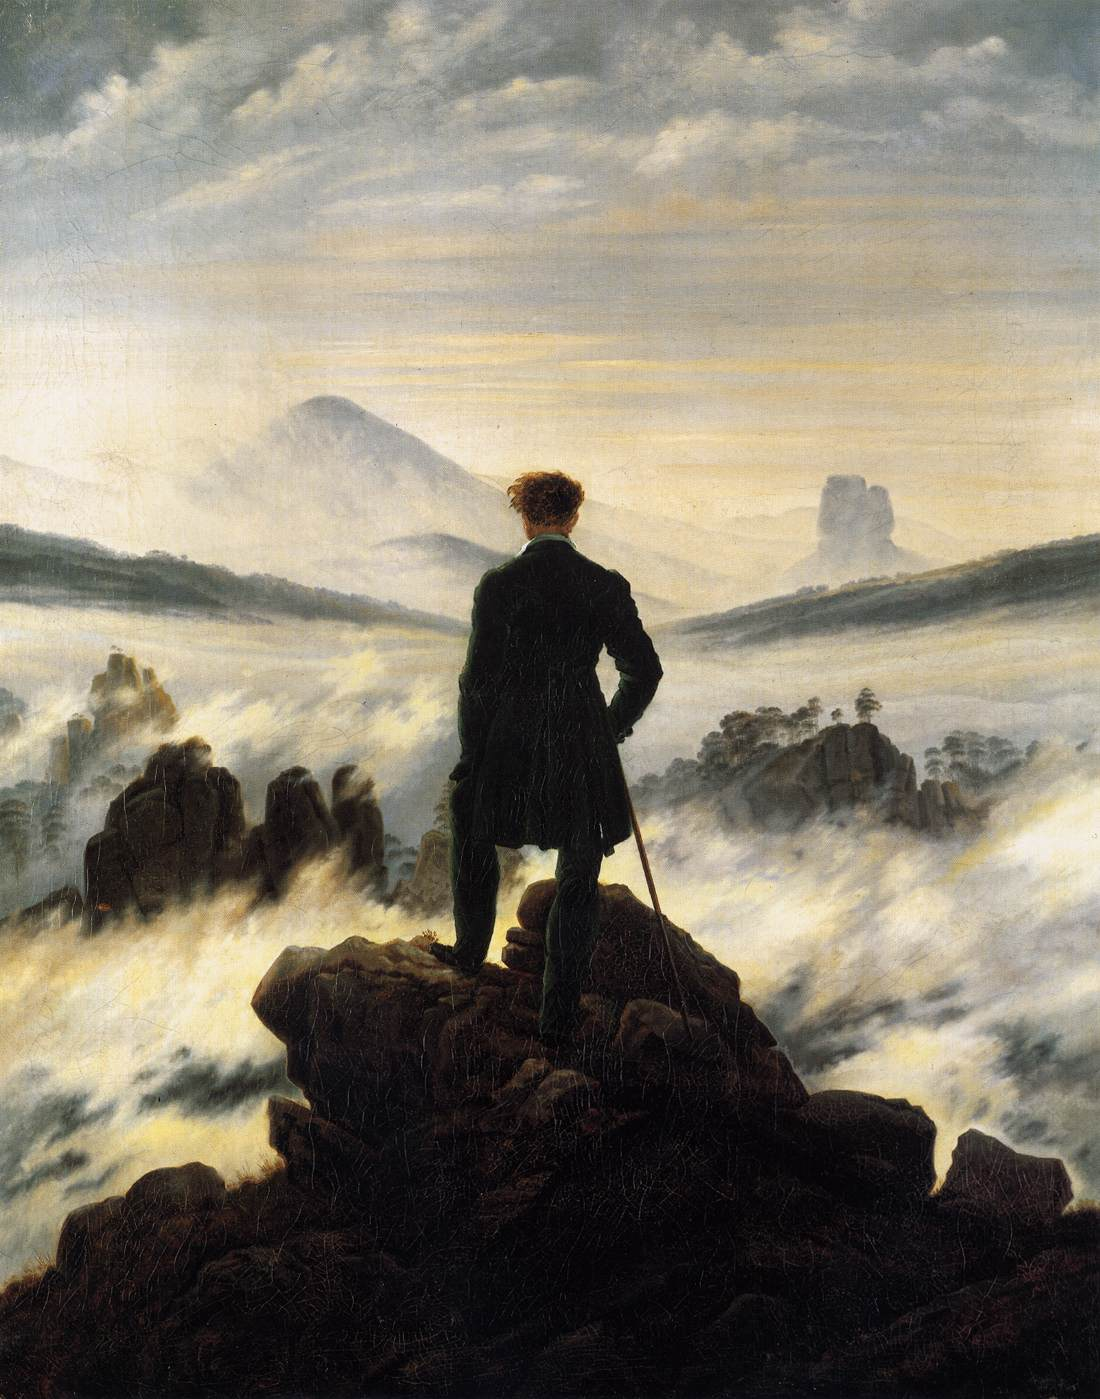 http://1.bp.blogspot.com/-CJdTlSjRJ0E/TeCUkA9mFYI/AAAAAAAABnA/vXySLfoPjTo/s1600/Caspar_David_Friedrich_032_High_Resolution.jpg